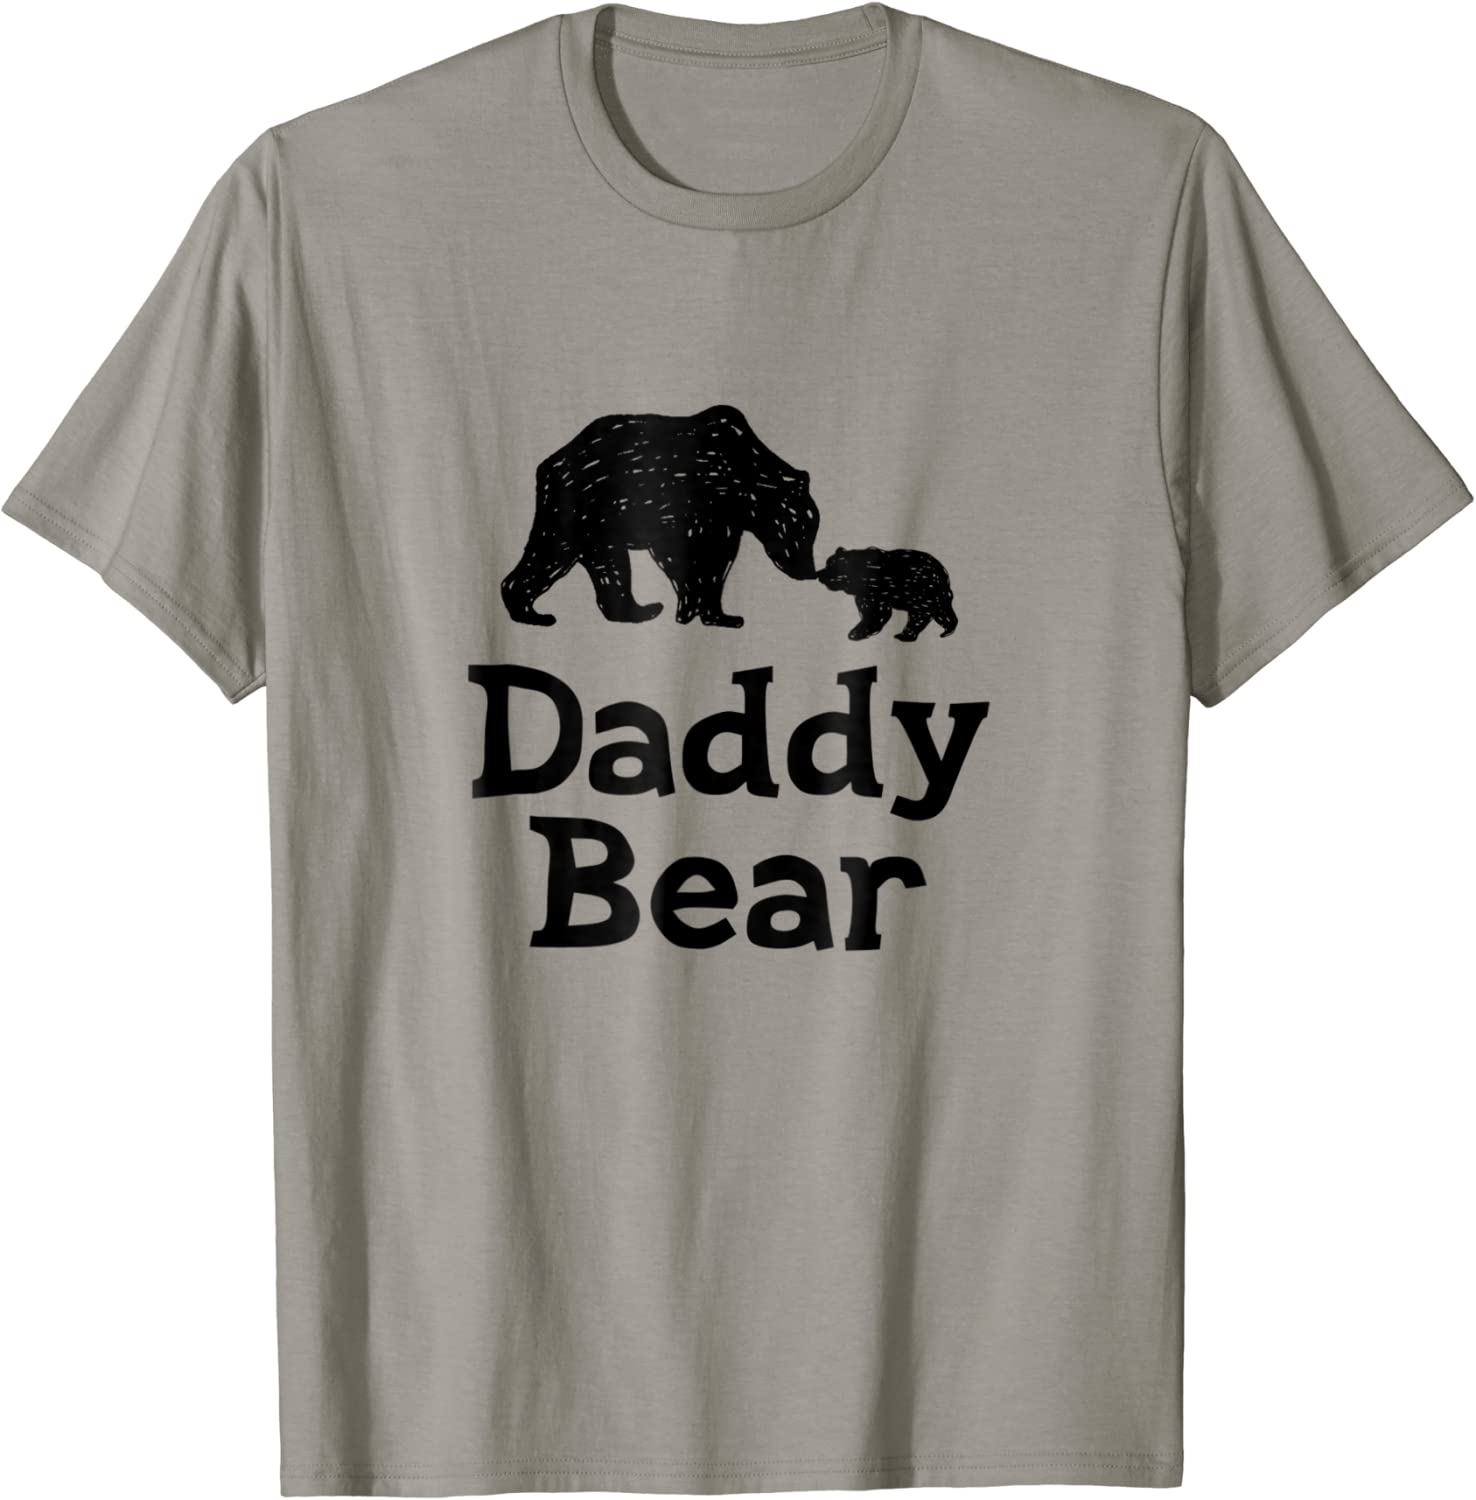 DADDY COOL Mens ORGANIC Gift T-Shirt Fathers Day Christmas Dad Birthday Eco Bear